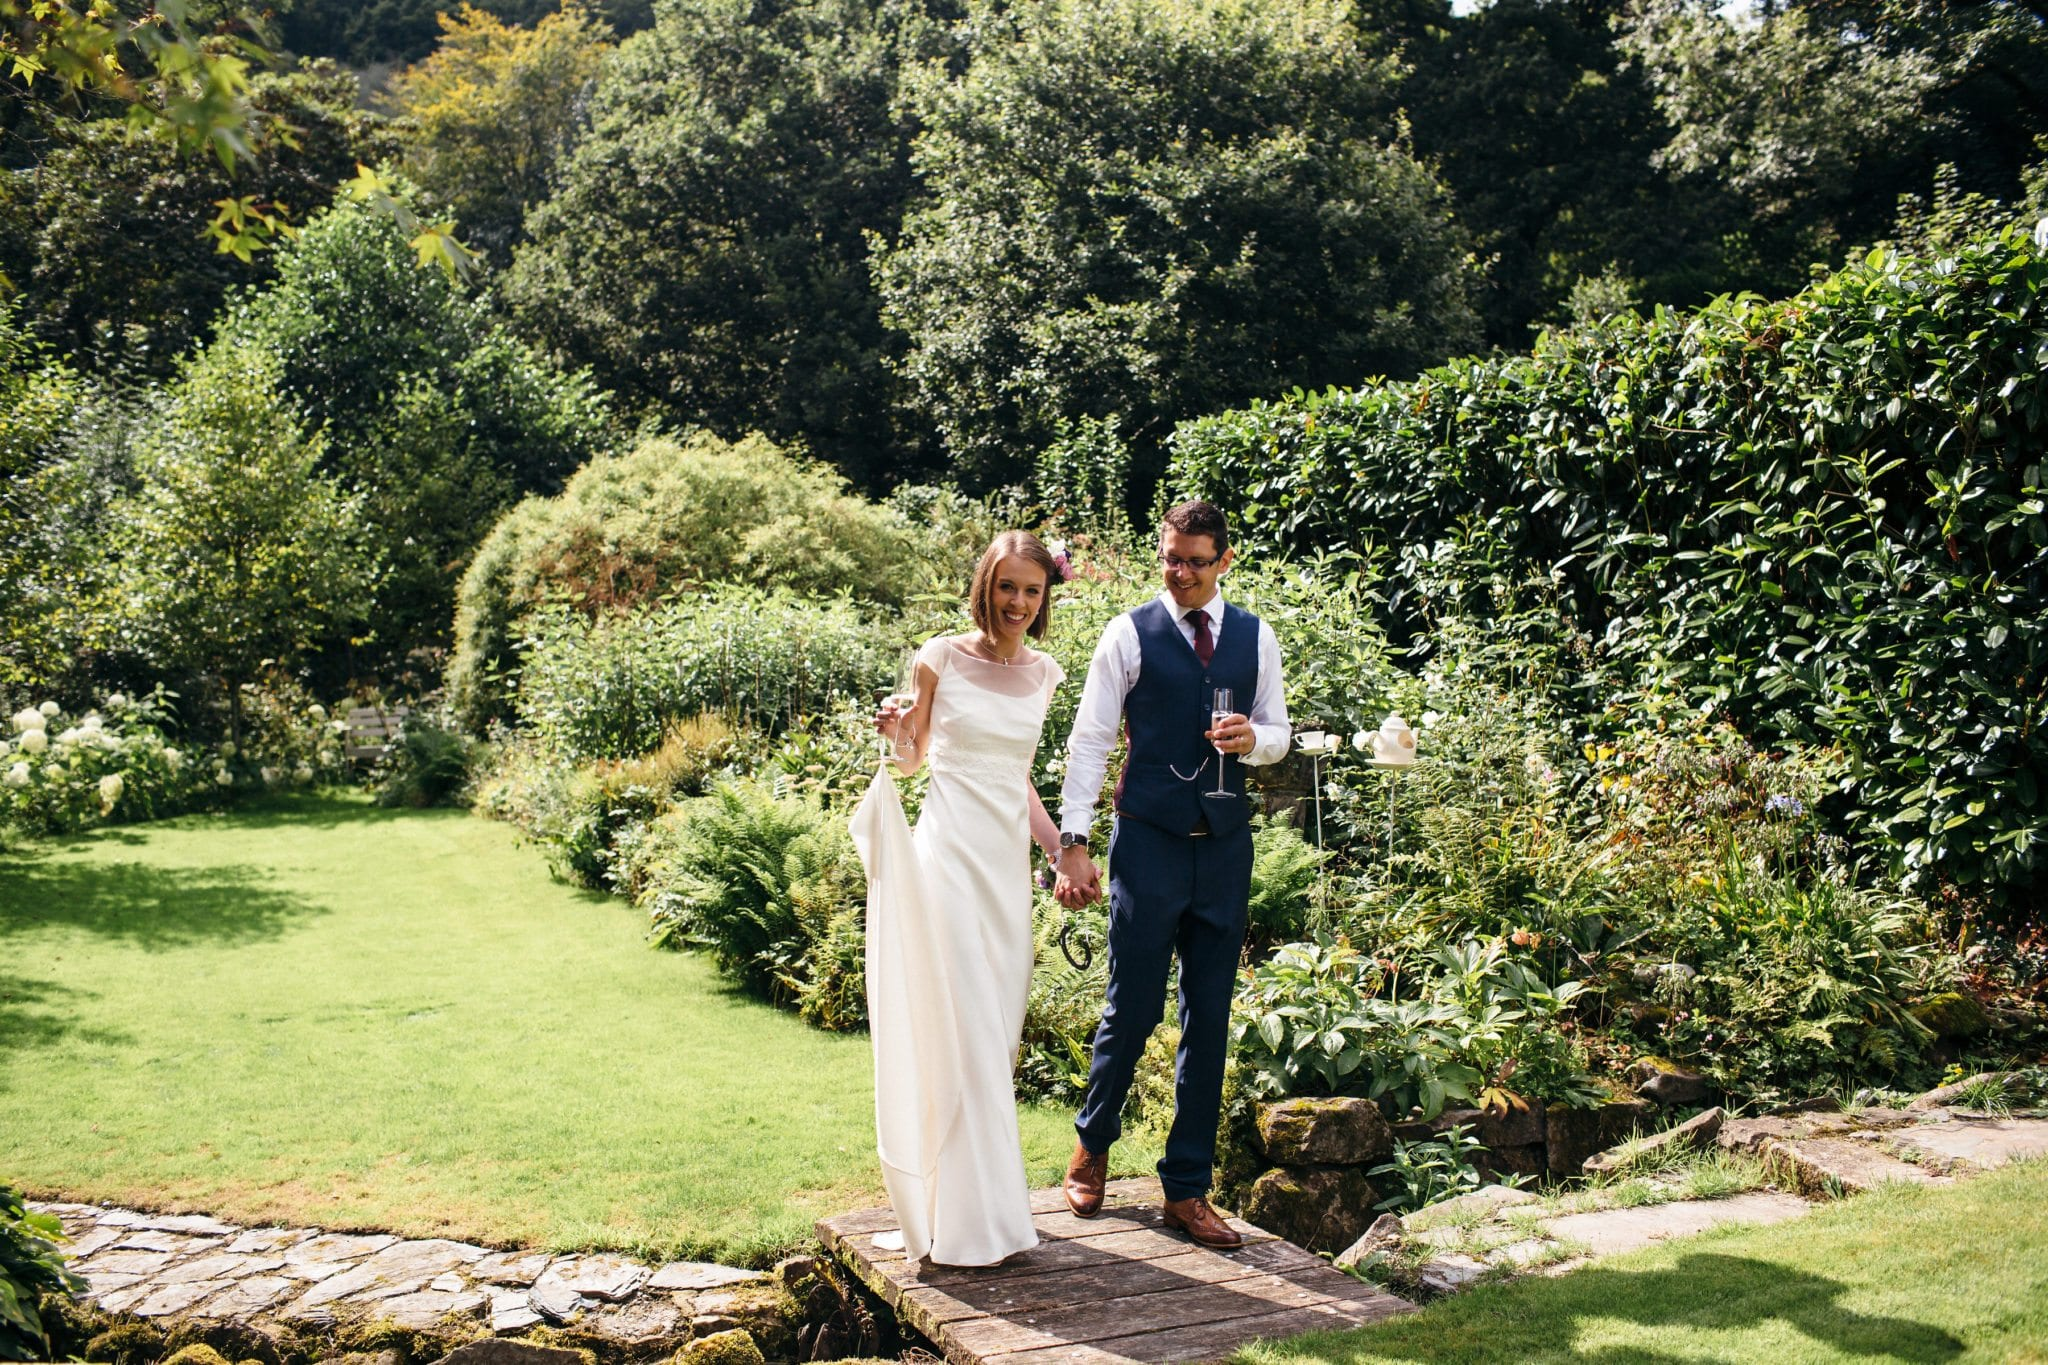 Lowri & Geoff Bride and Groom in a garden devon